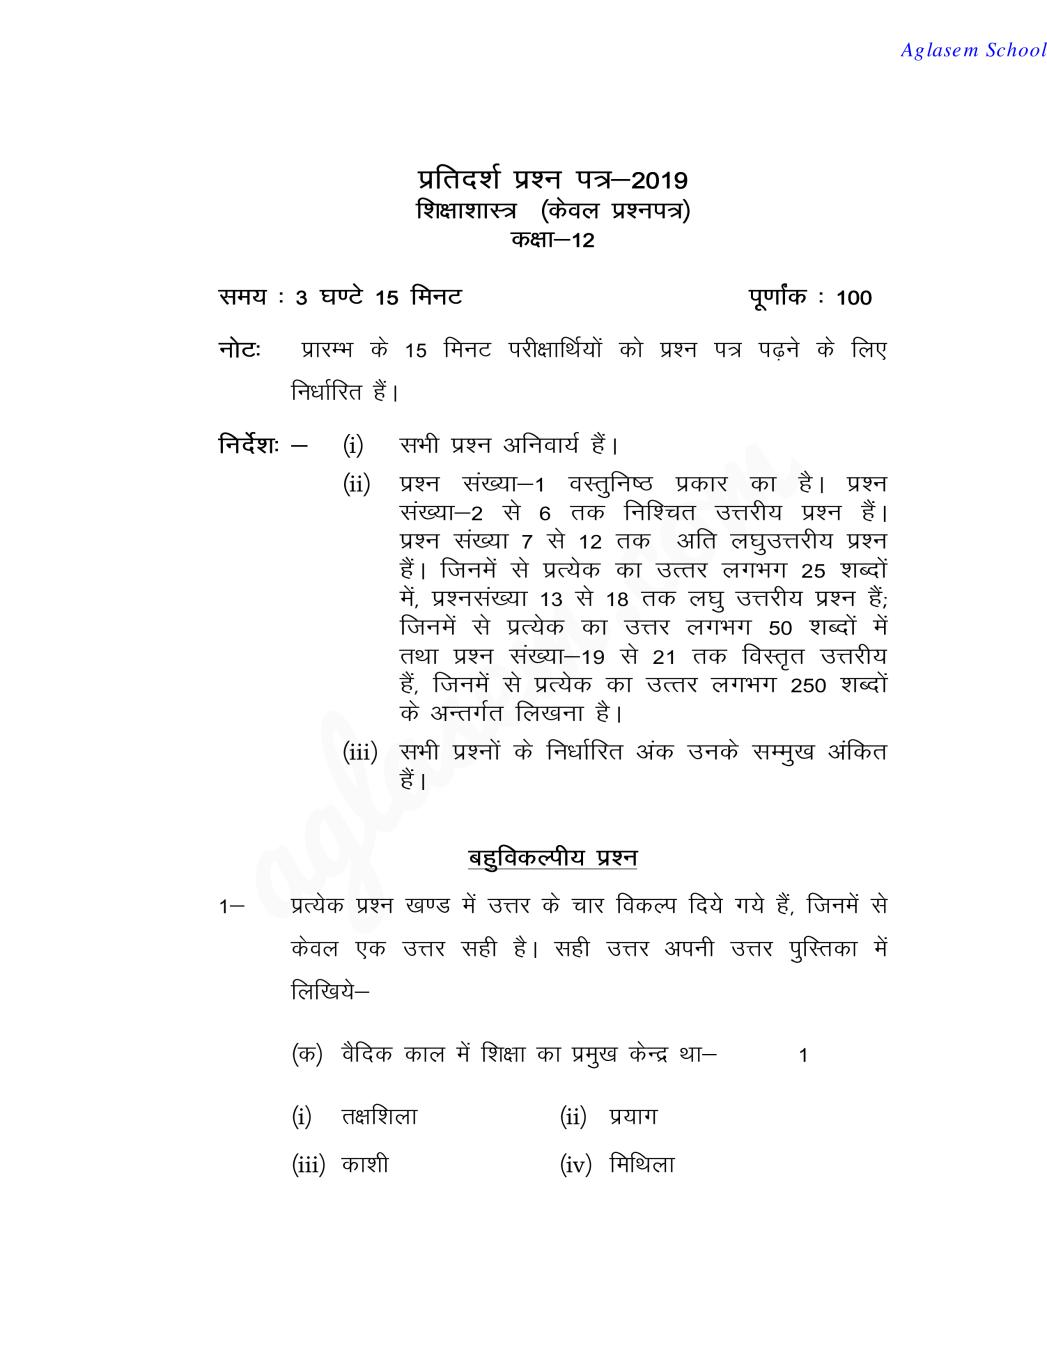 UP Board Model Paper 2020 Class 12th – Education